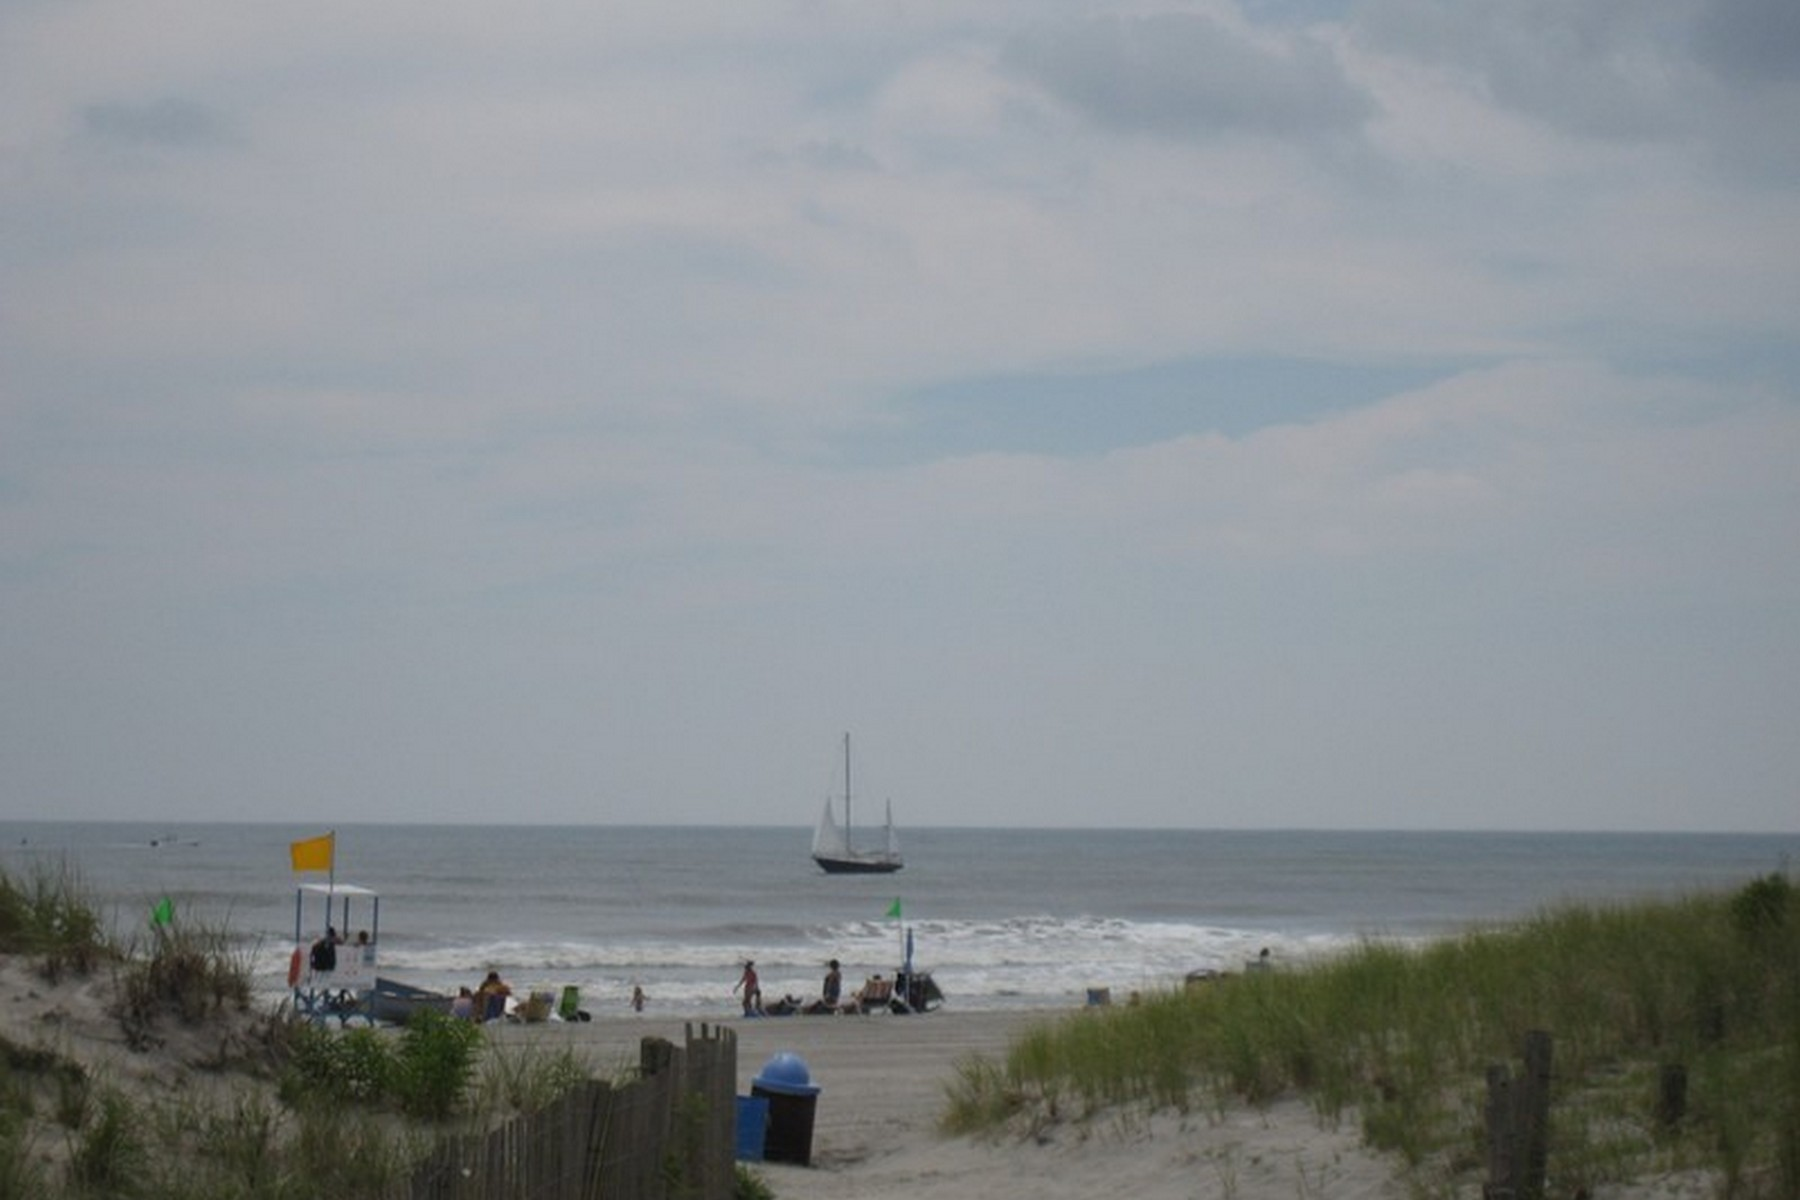 Land for Sale at 3 S Dudley Ave Ventnor, New Jersey 08406 United States